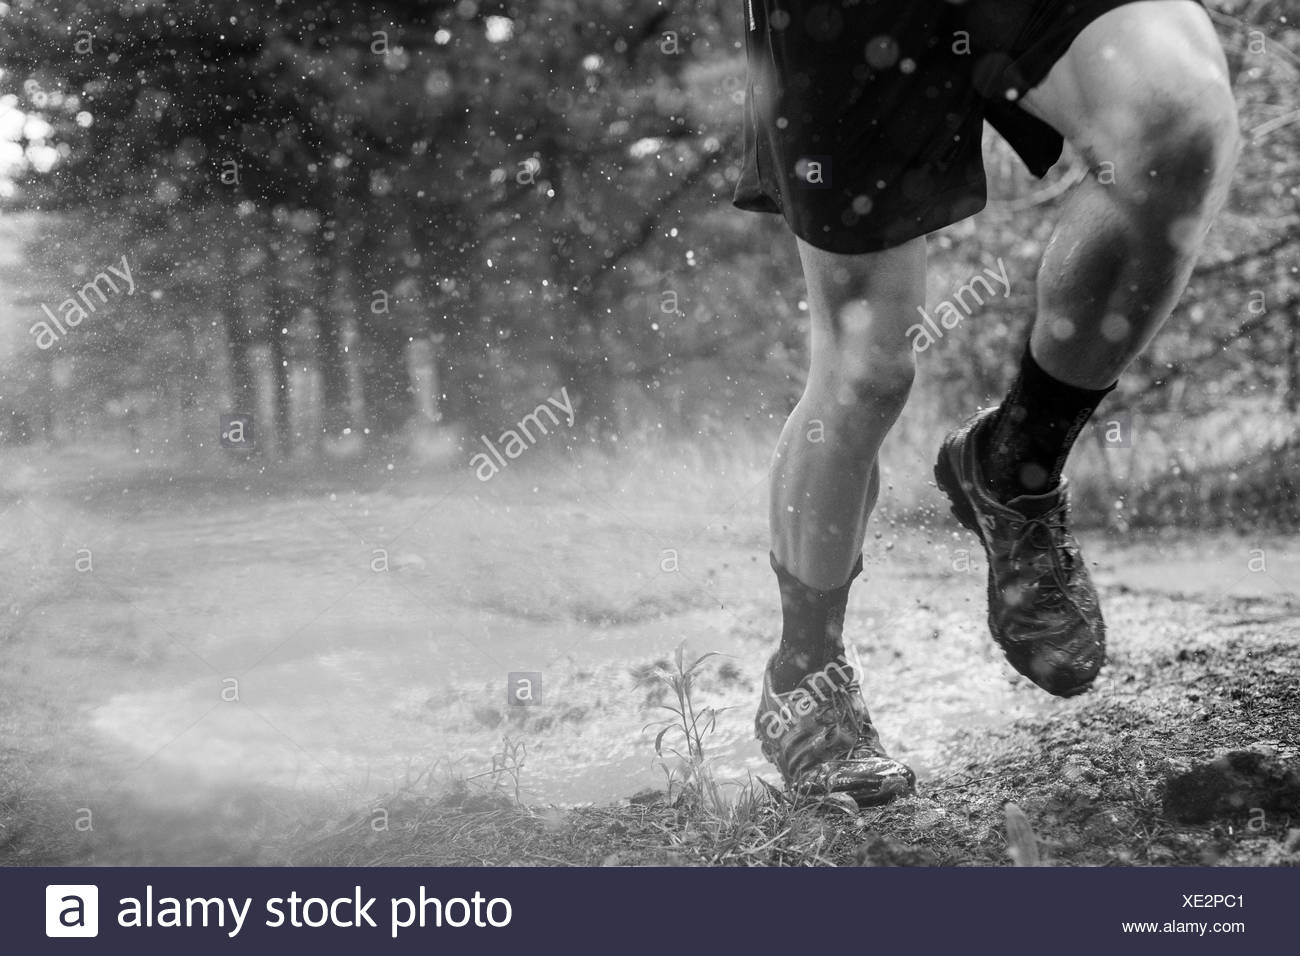 Low section of male runner splashing though puddle in Rancho Santa Elena, Hidalgo, Mexico - Stock Image